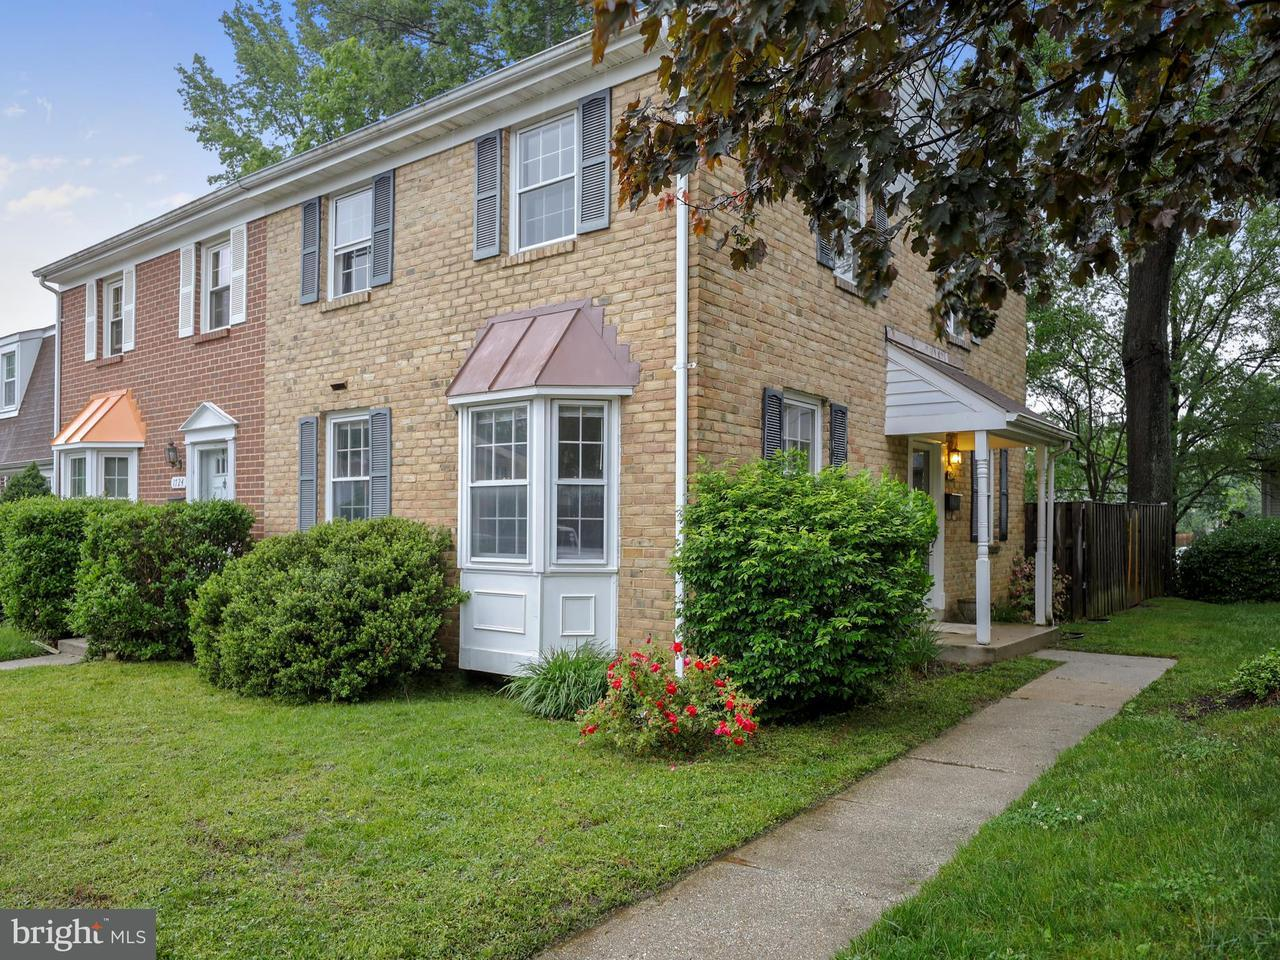 Homes for Sale in Crofton MD